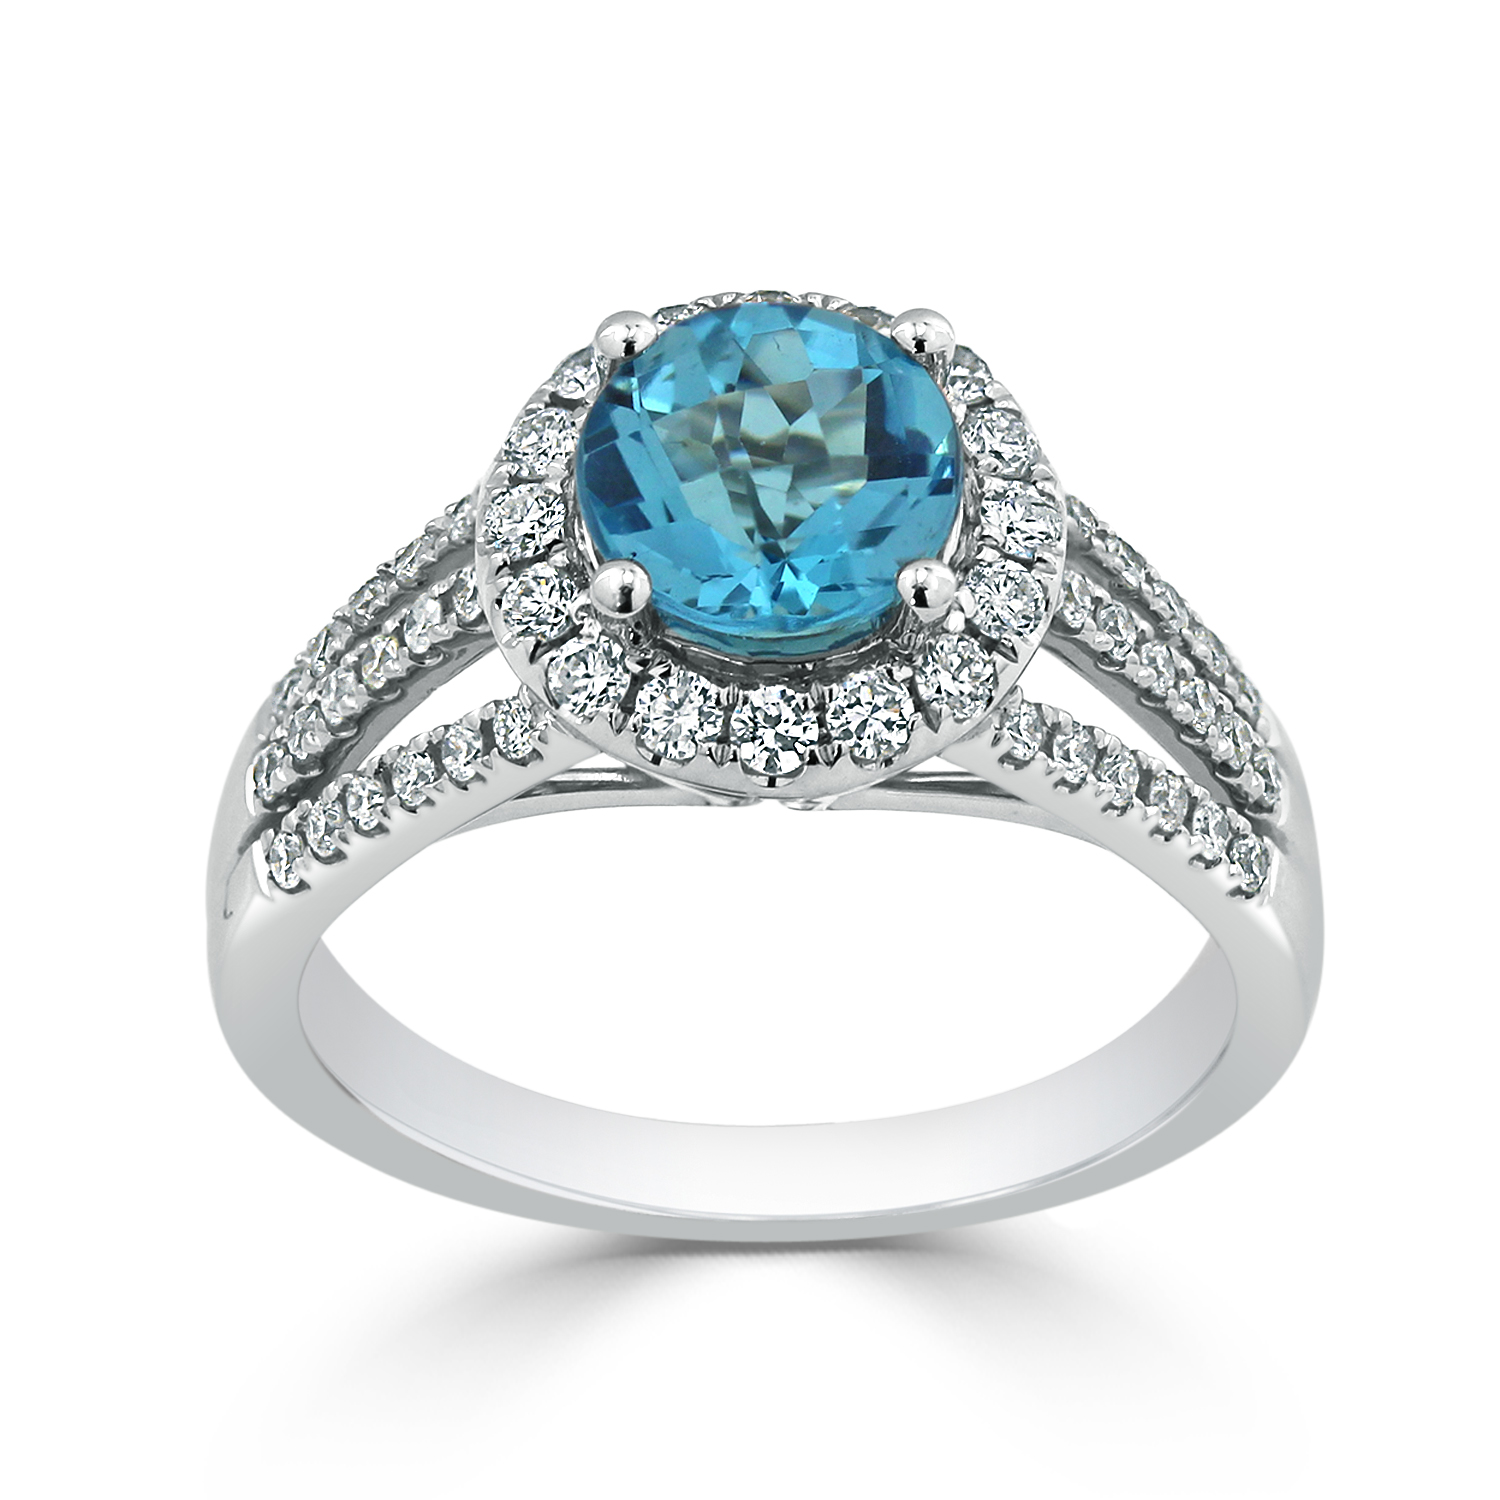 Halo Sky Blue Topaz Diamond Ring in 14K White Gold with 1.30 carat Round Sky Blue Topaz